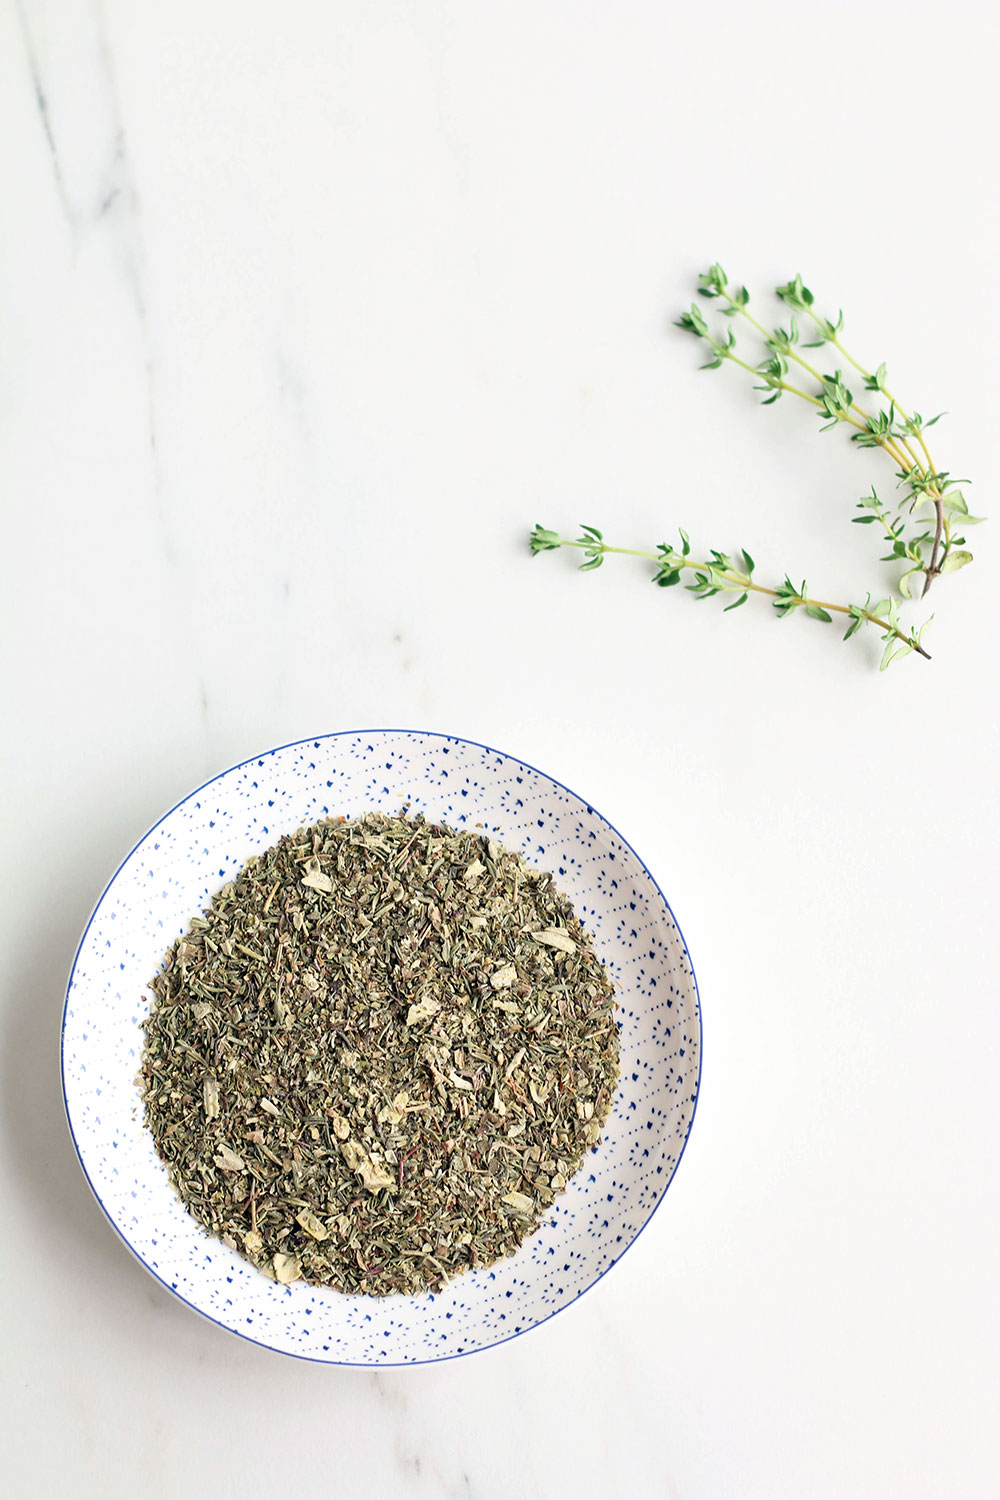 Homemade Mediterranean herb mix recipe: Perfect for seasoning grilled fish, meat and vegetables! https://www.spotebi.com/recipes/mediterranean-herb-mix-recipe/